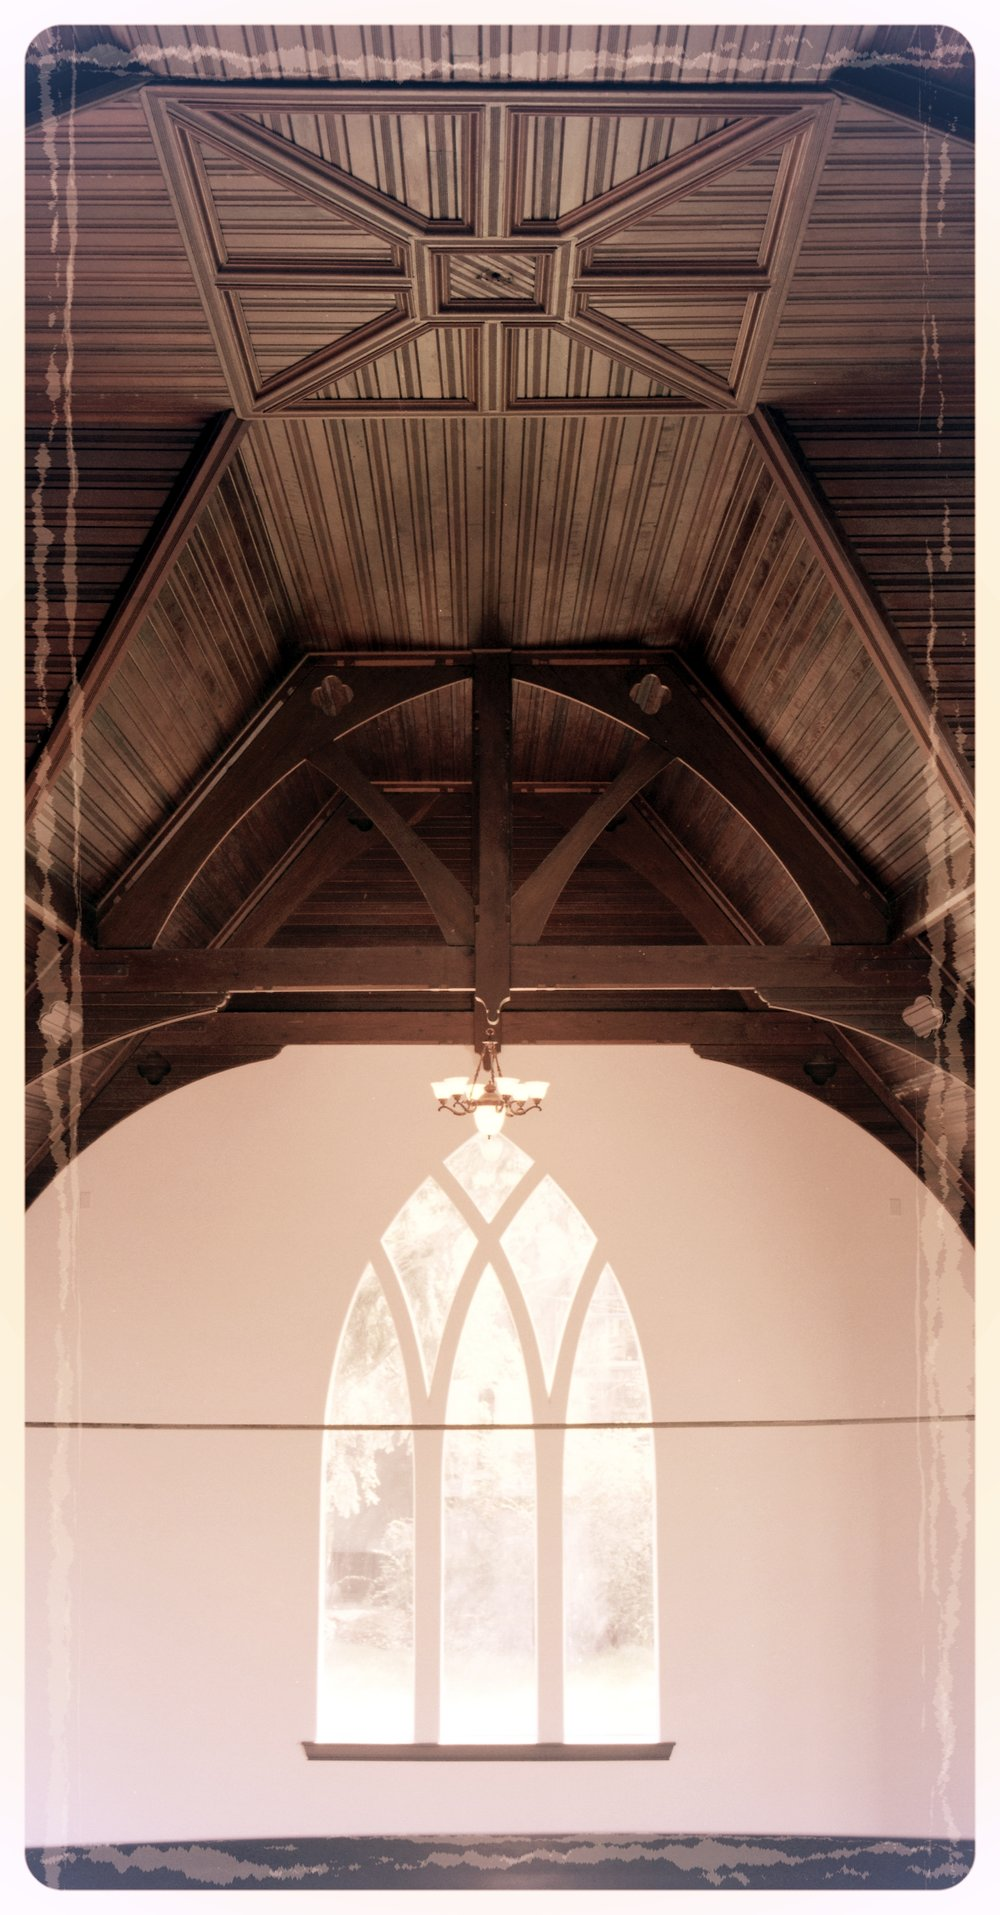 Gothic mansion interior ceiling woodwork detail and peaked arched window.jpg